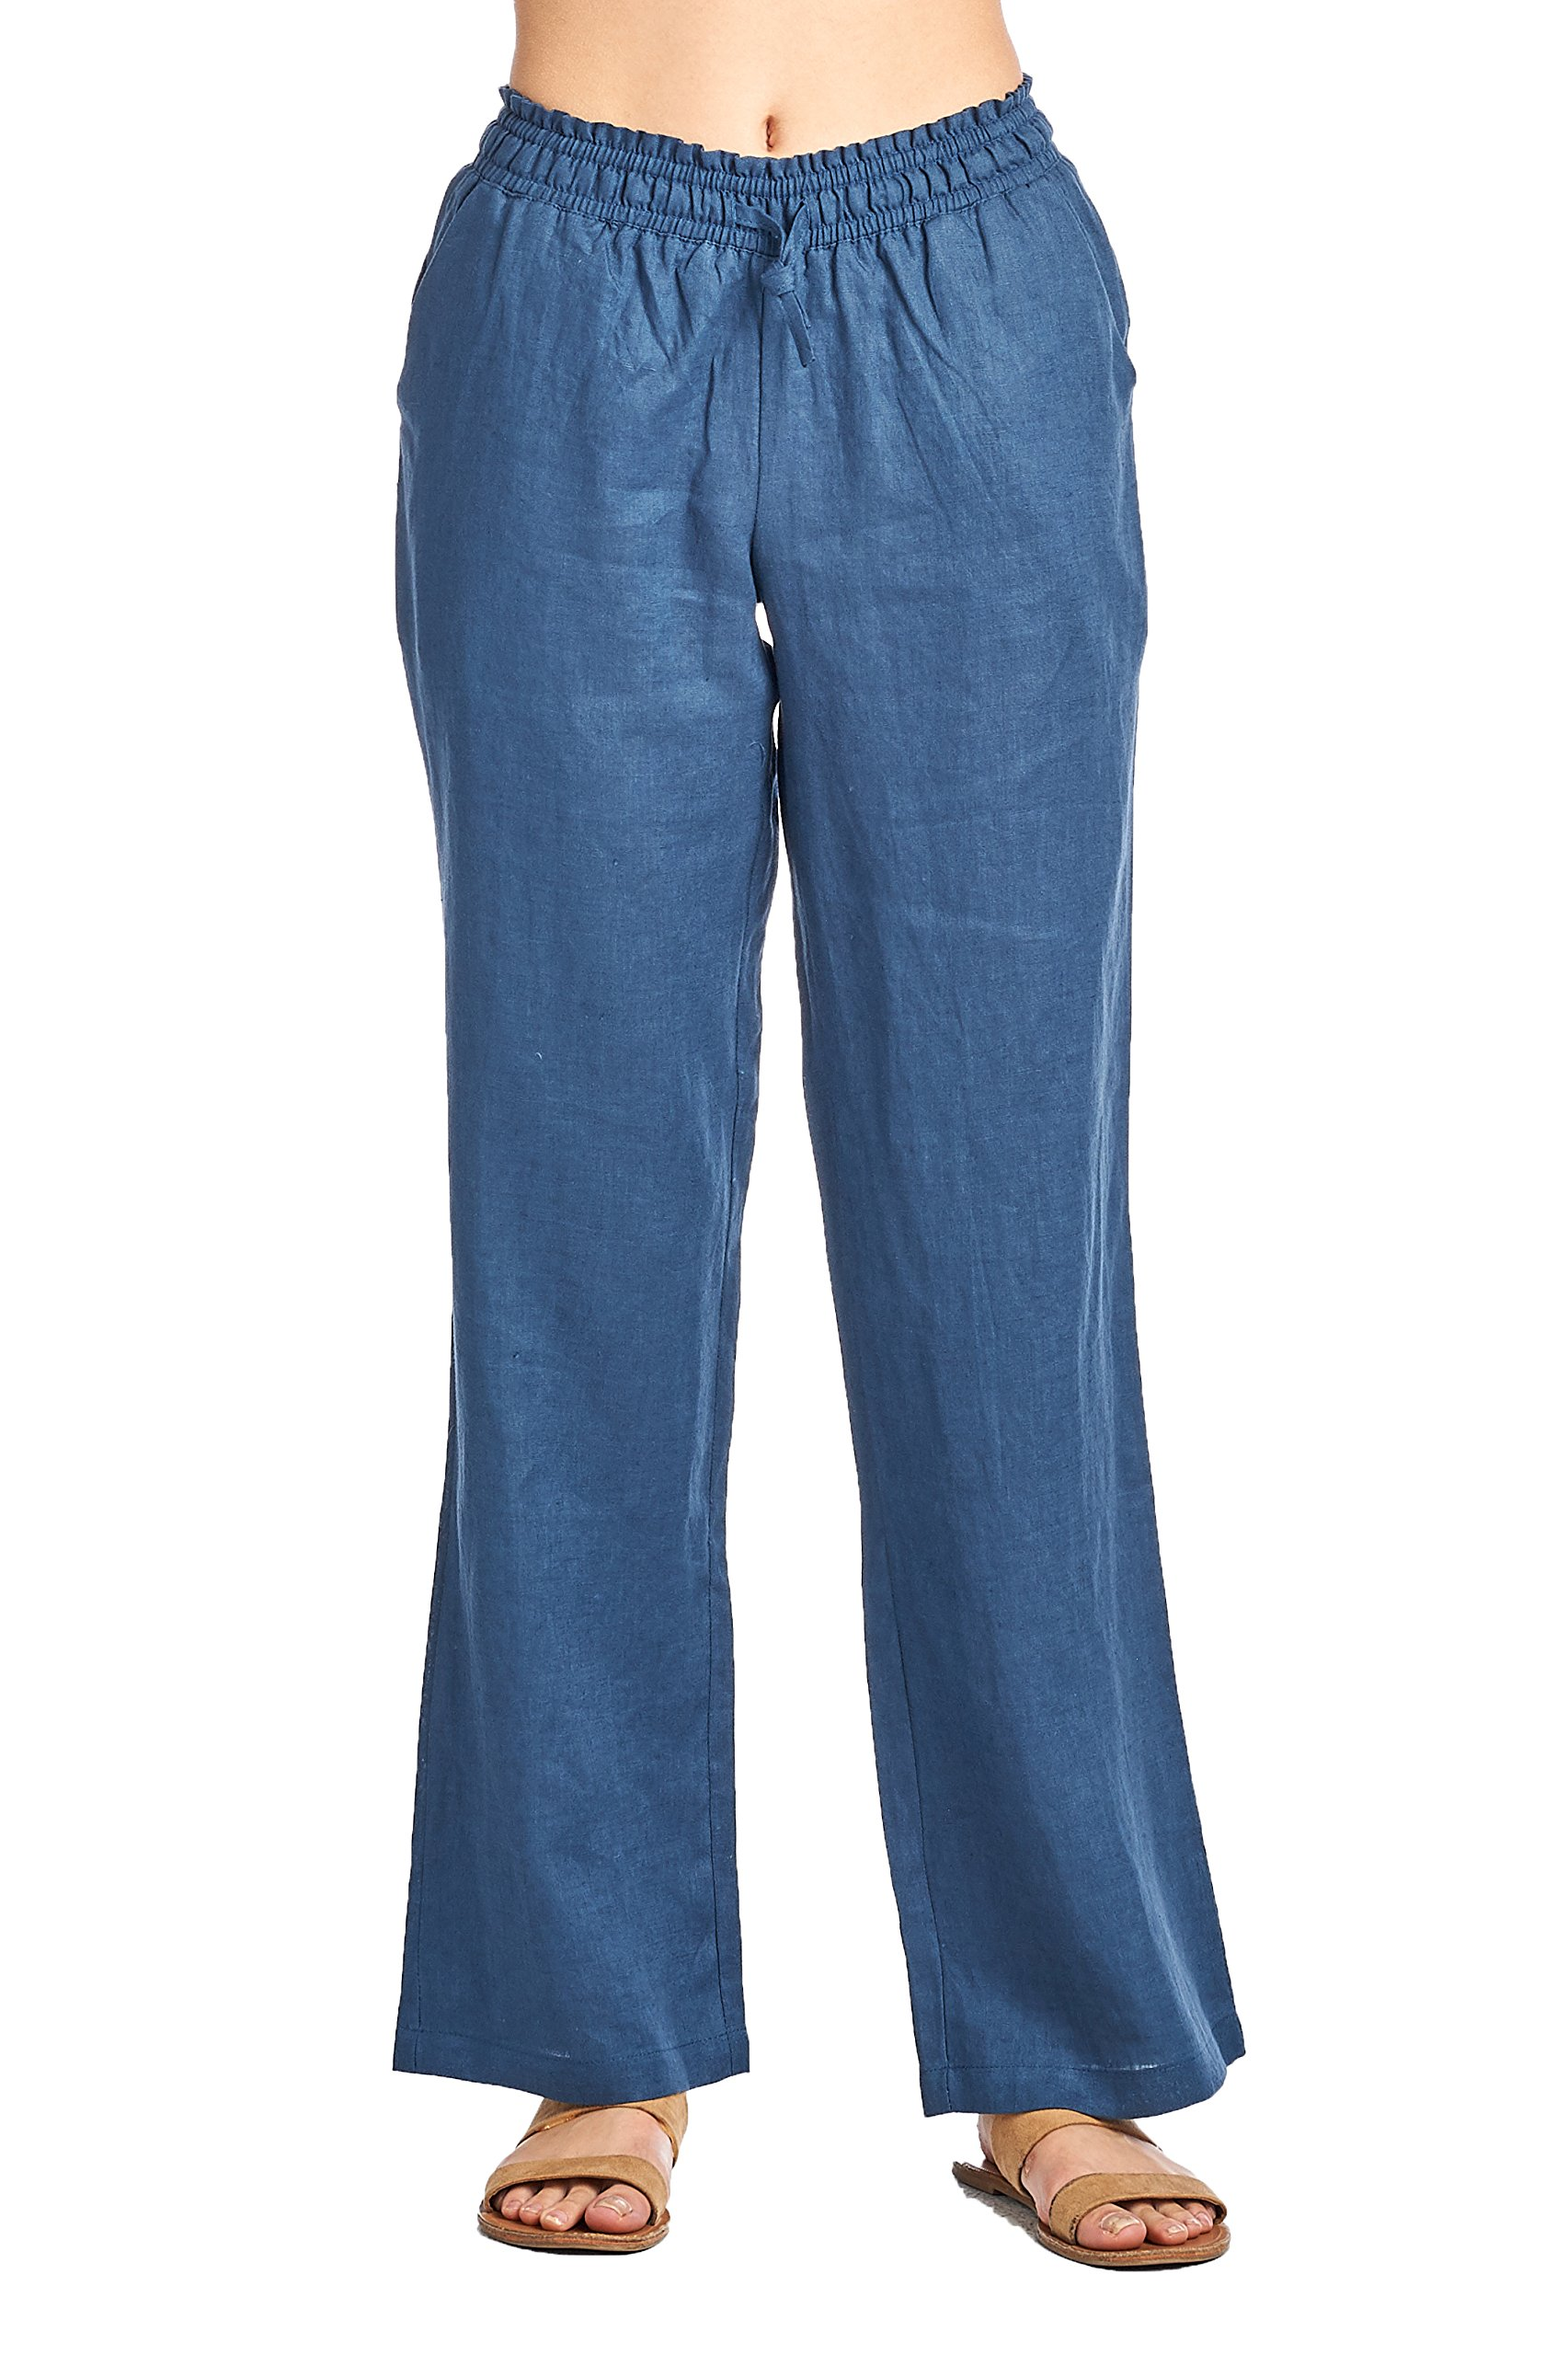 High Style Women's wide leg smocked waist 100% linen pants with drawstring tie (008A, NavyBlue, 8)